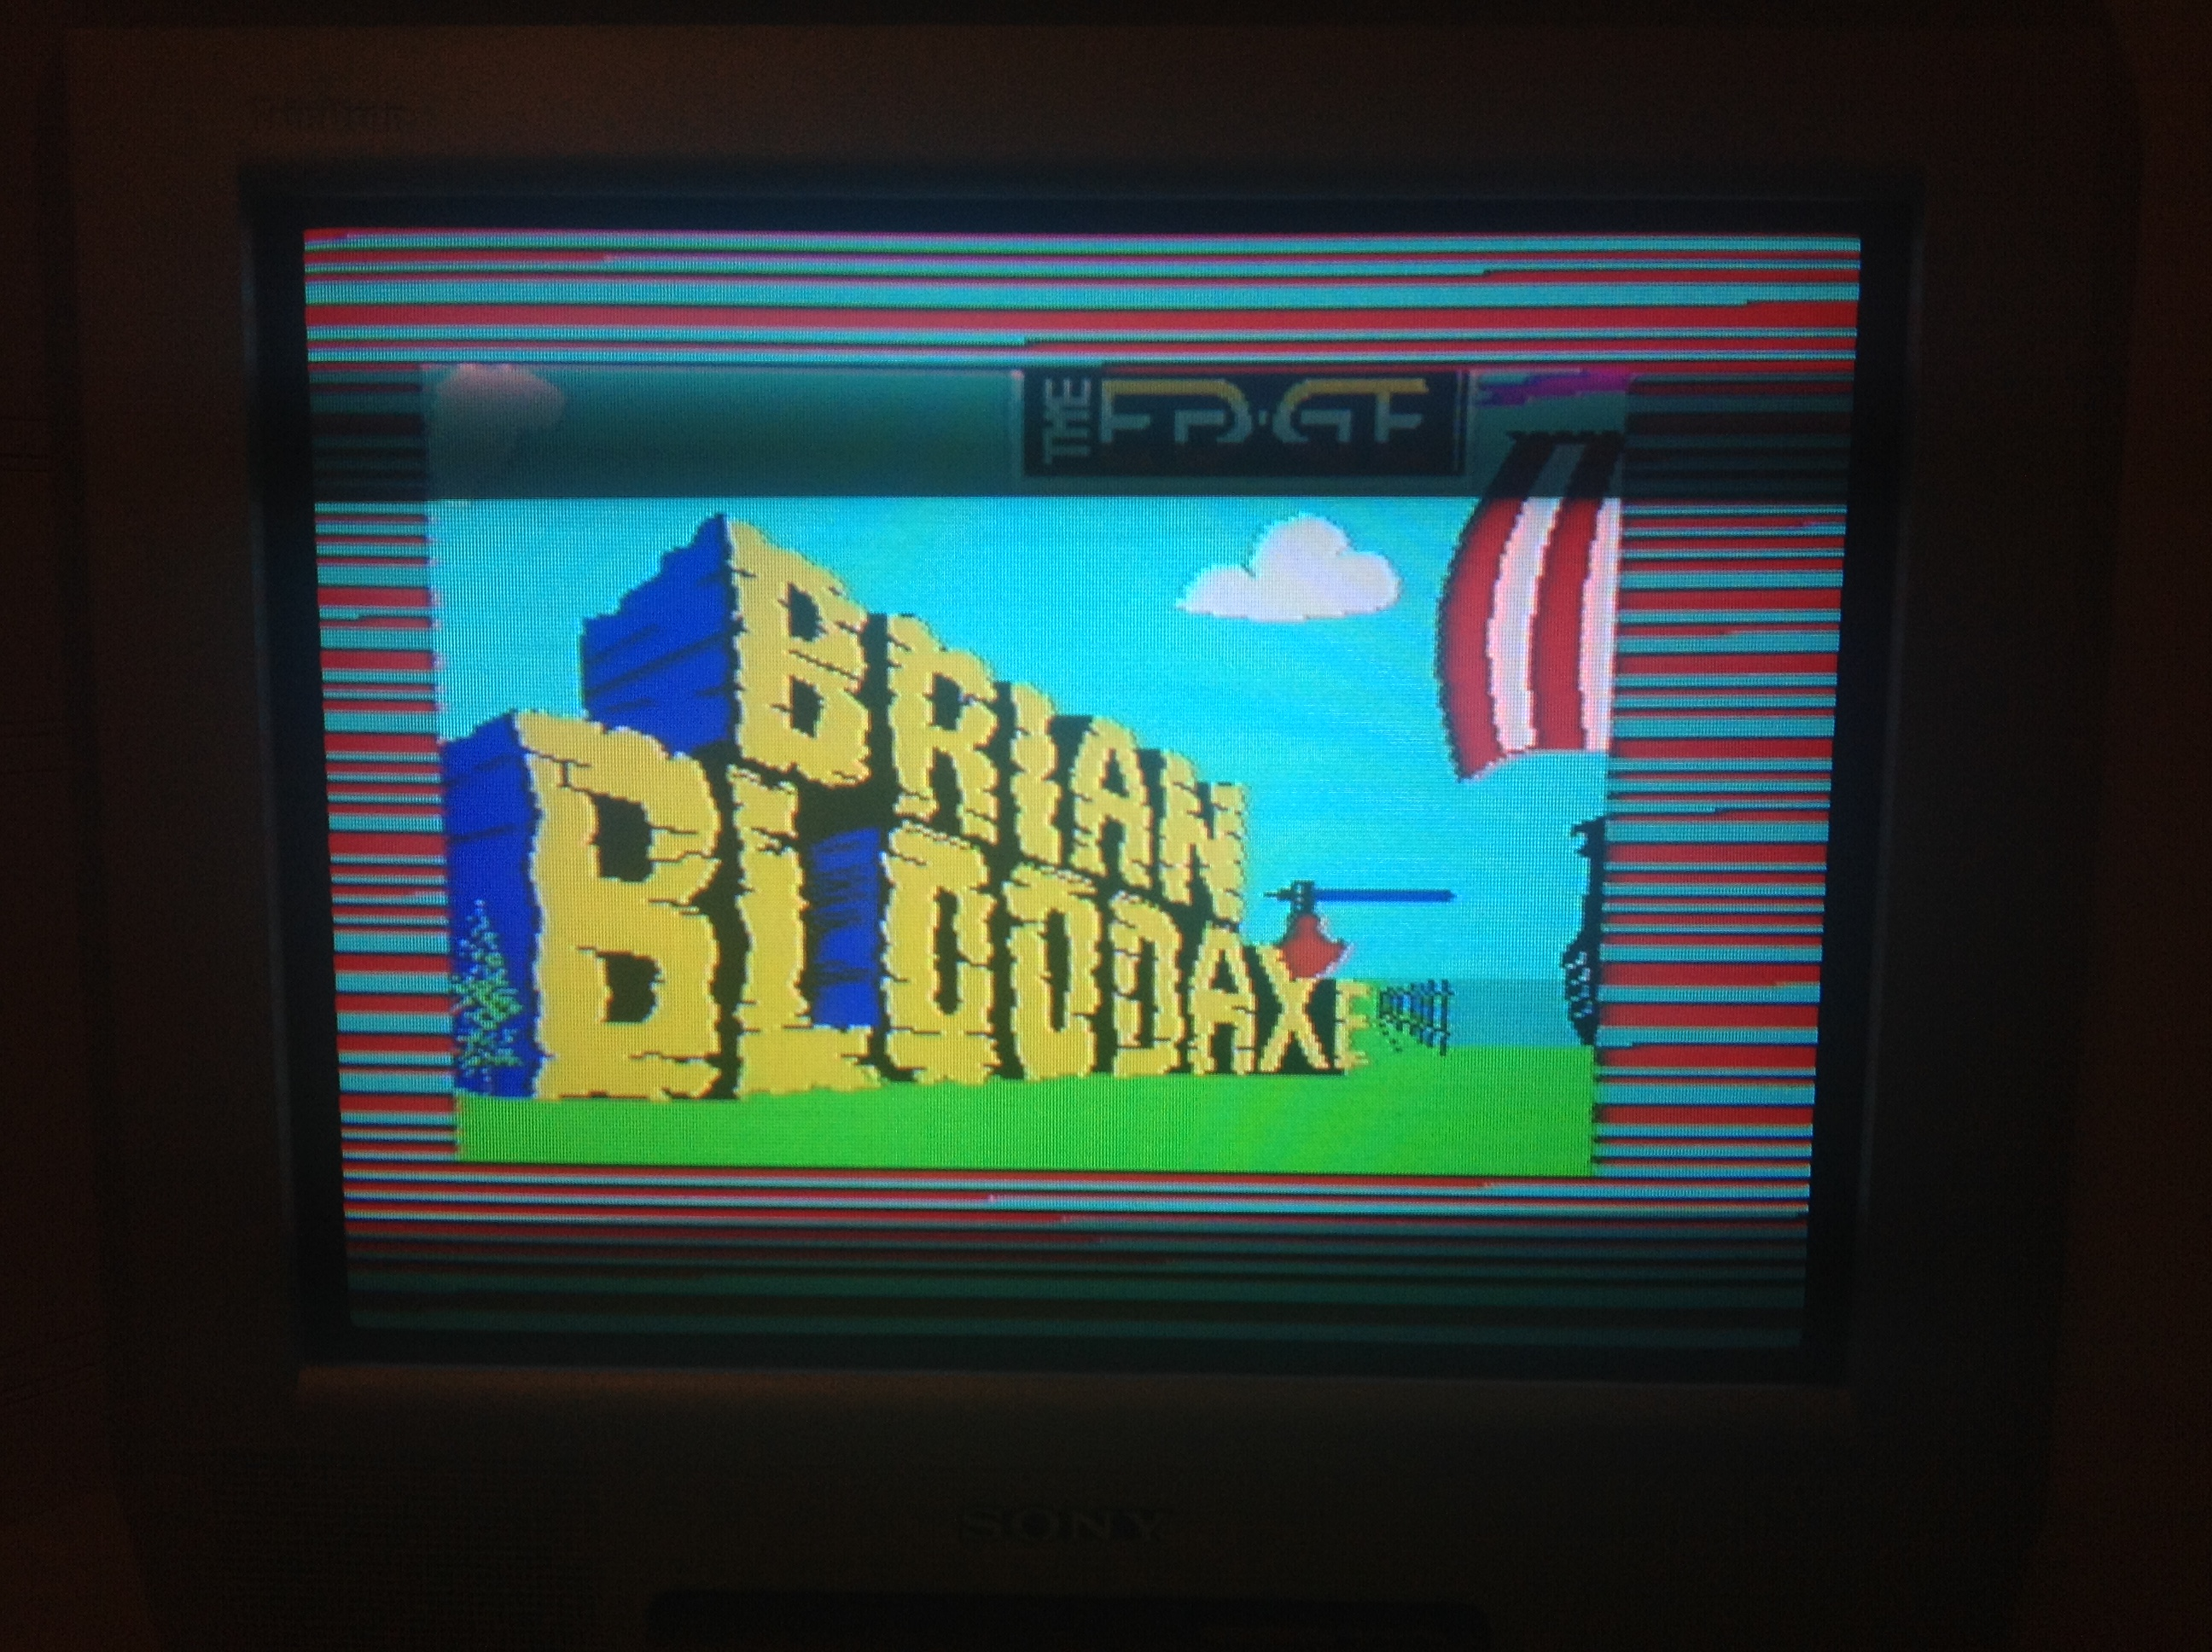 CoCoForest: Brian Bloodaxe (ZX Spectrum) 2,400 points on 2016-01-05 11:30:50